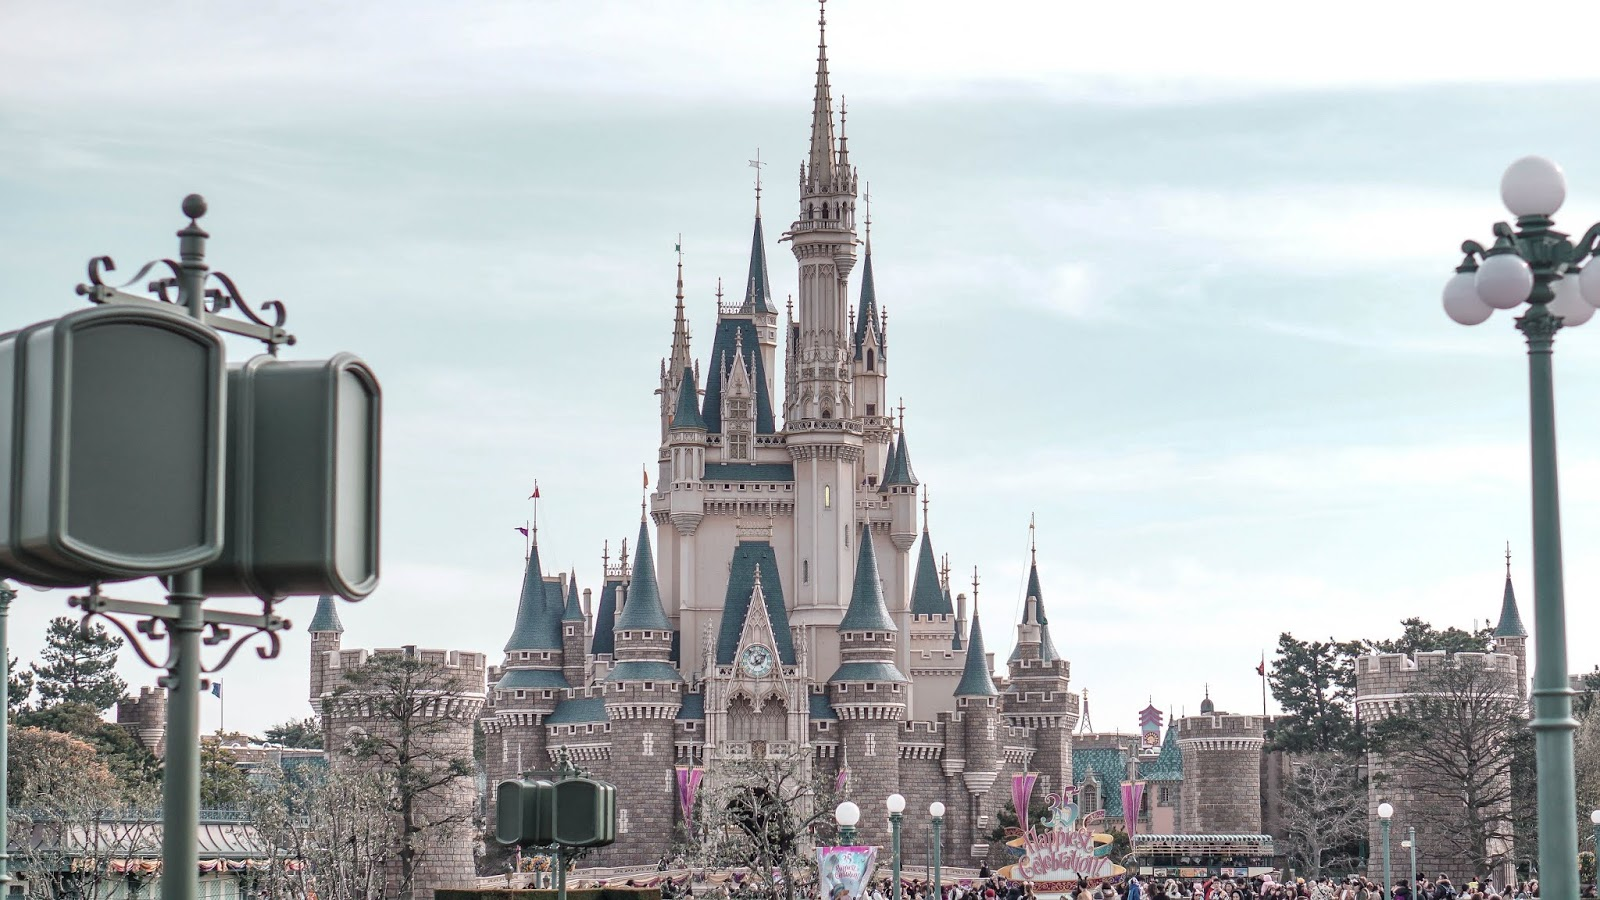 Tokyo Disneyland: The Happiest Place on Earth!